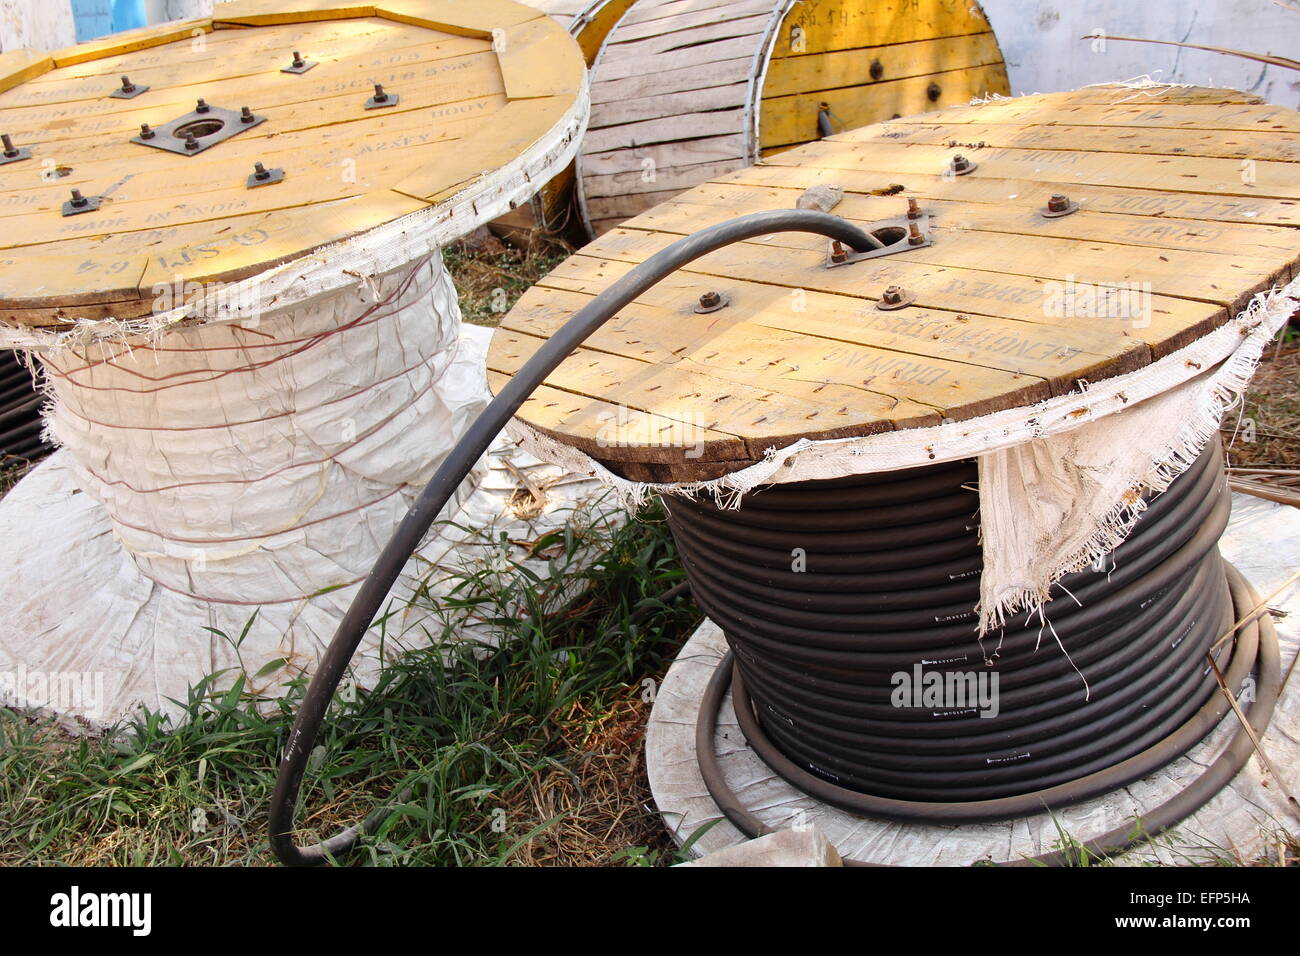 Telephone cable roll - Stock Image